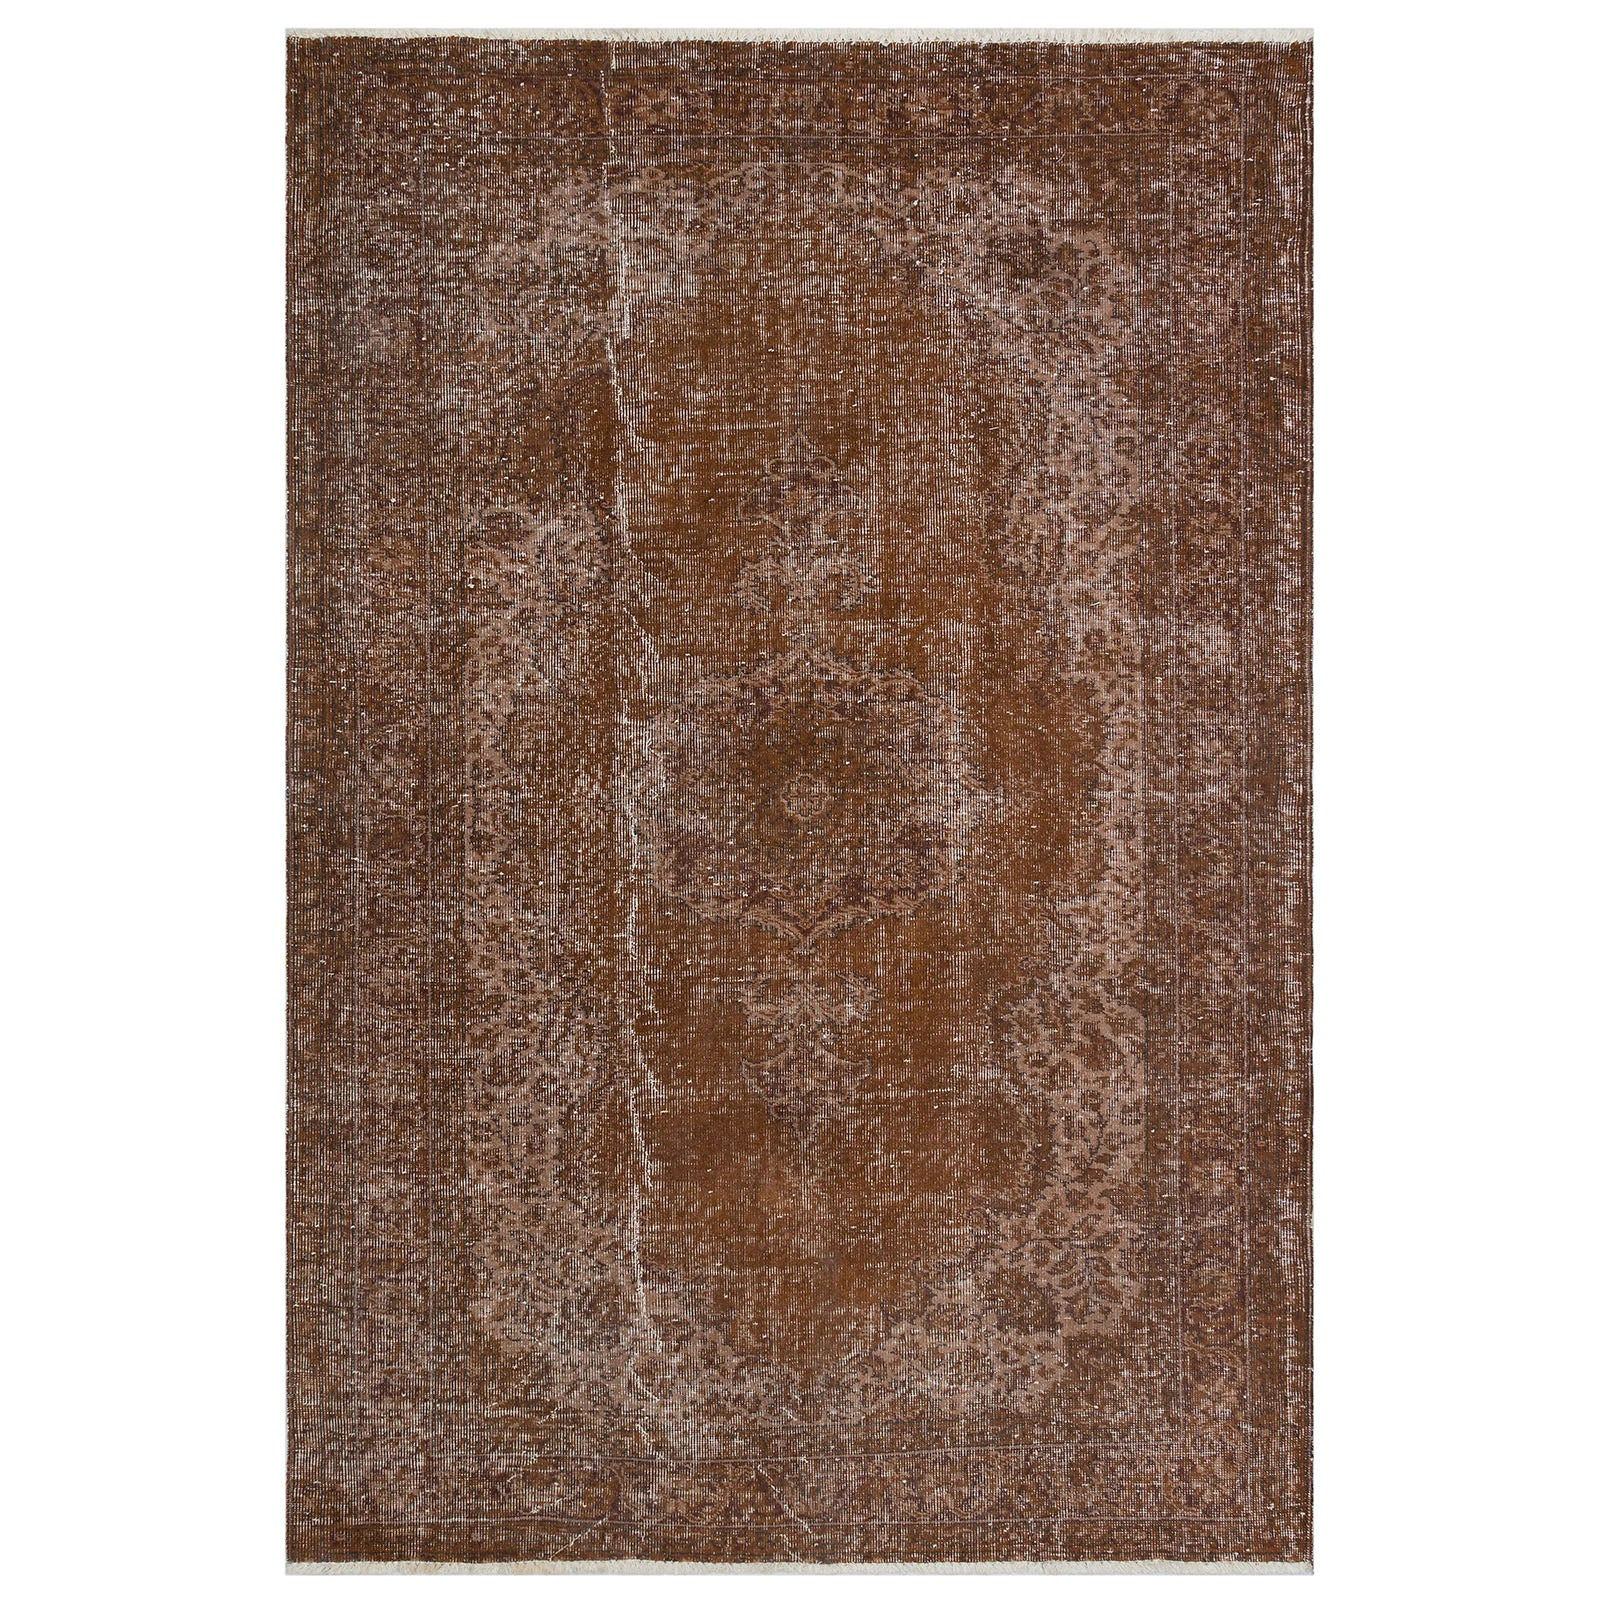 Hali 170X255  CM Bursa Handmade over dyed rug  1630